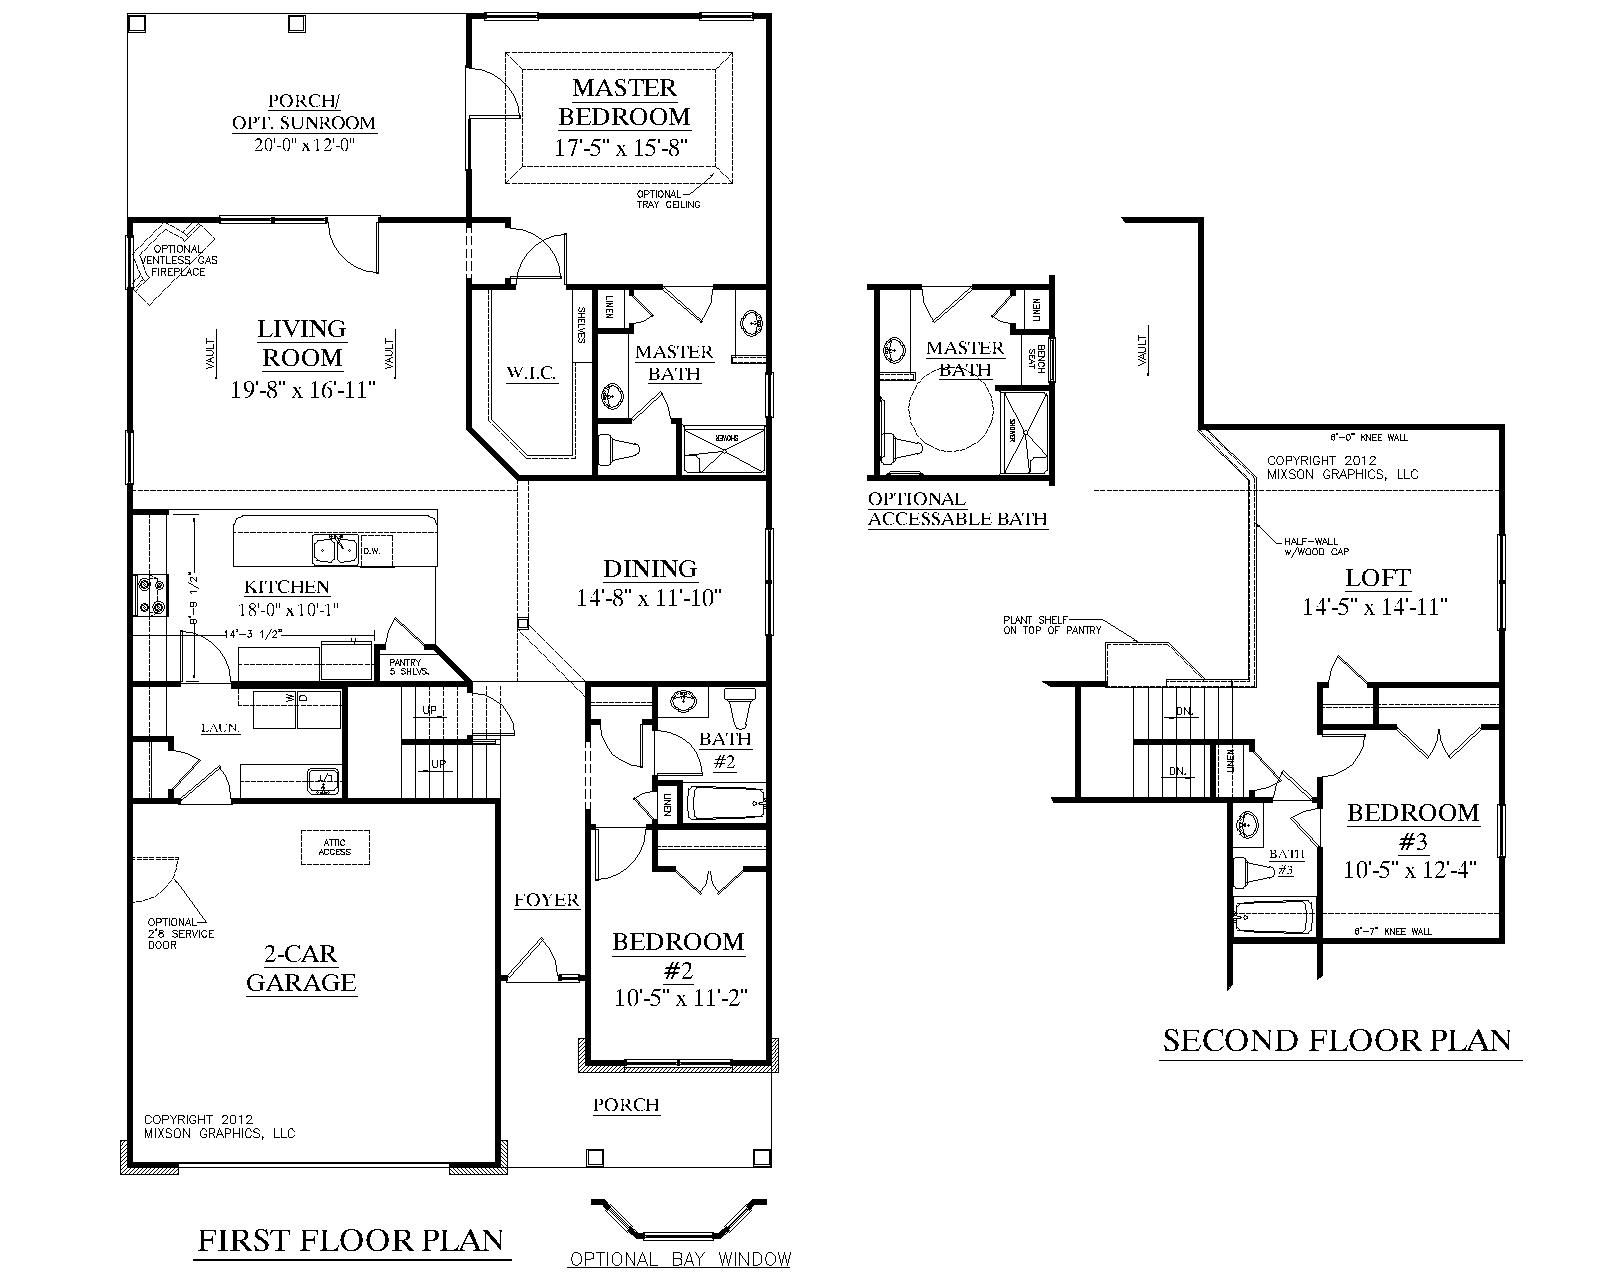 House plan 2224 kingstree floor plan traditional 1 1 2 for One story with loft house plans